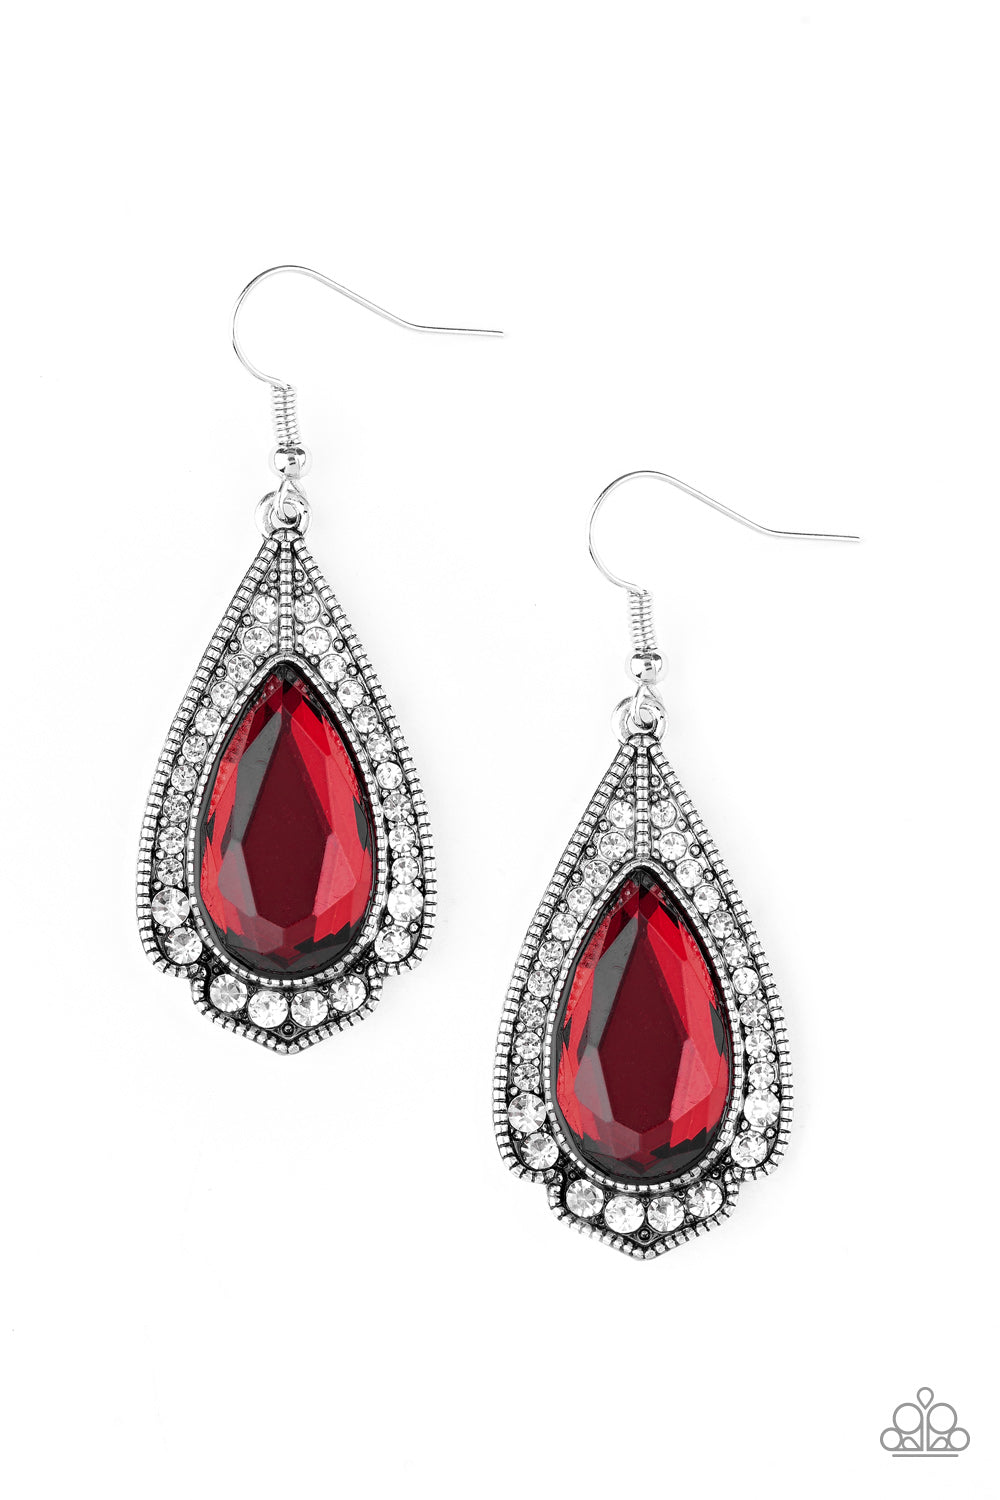 Paparazzi Earring  - Superstar Stardom - Red